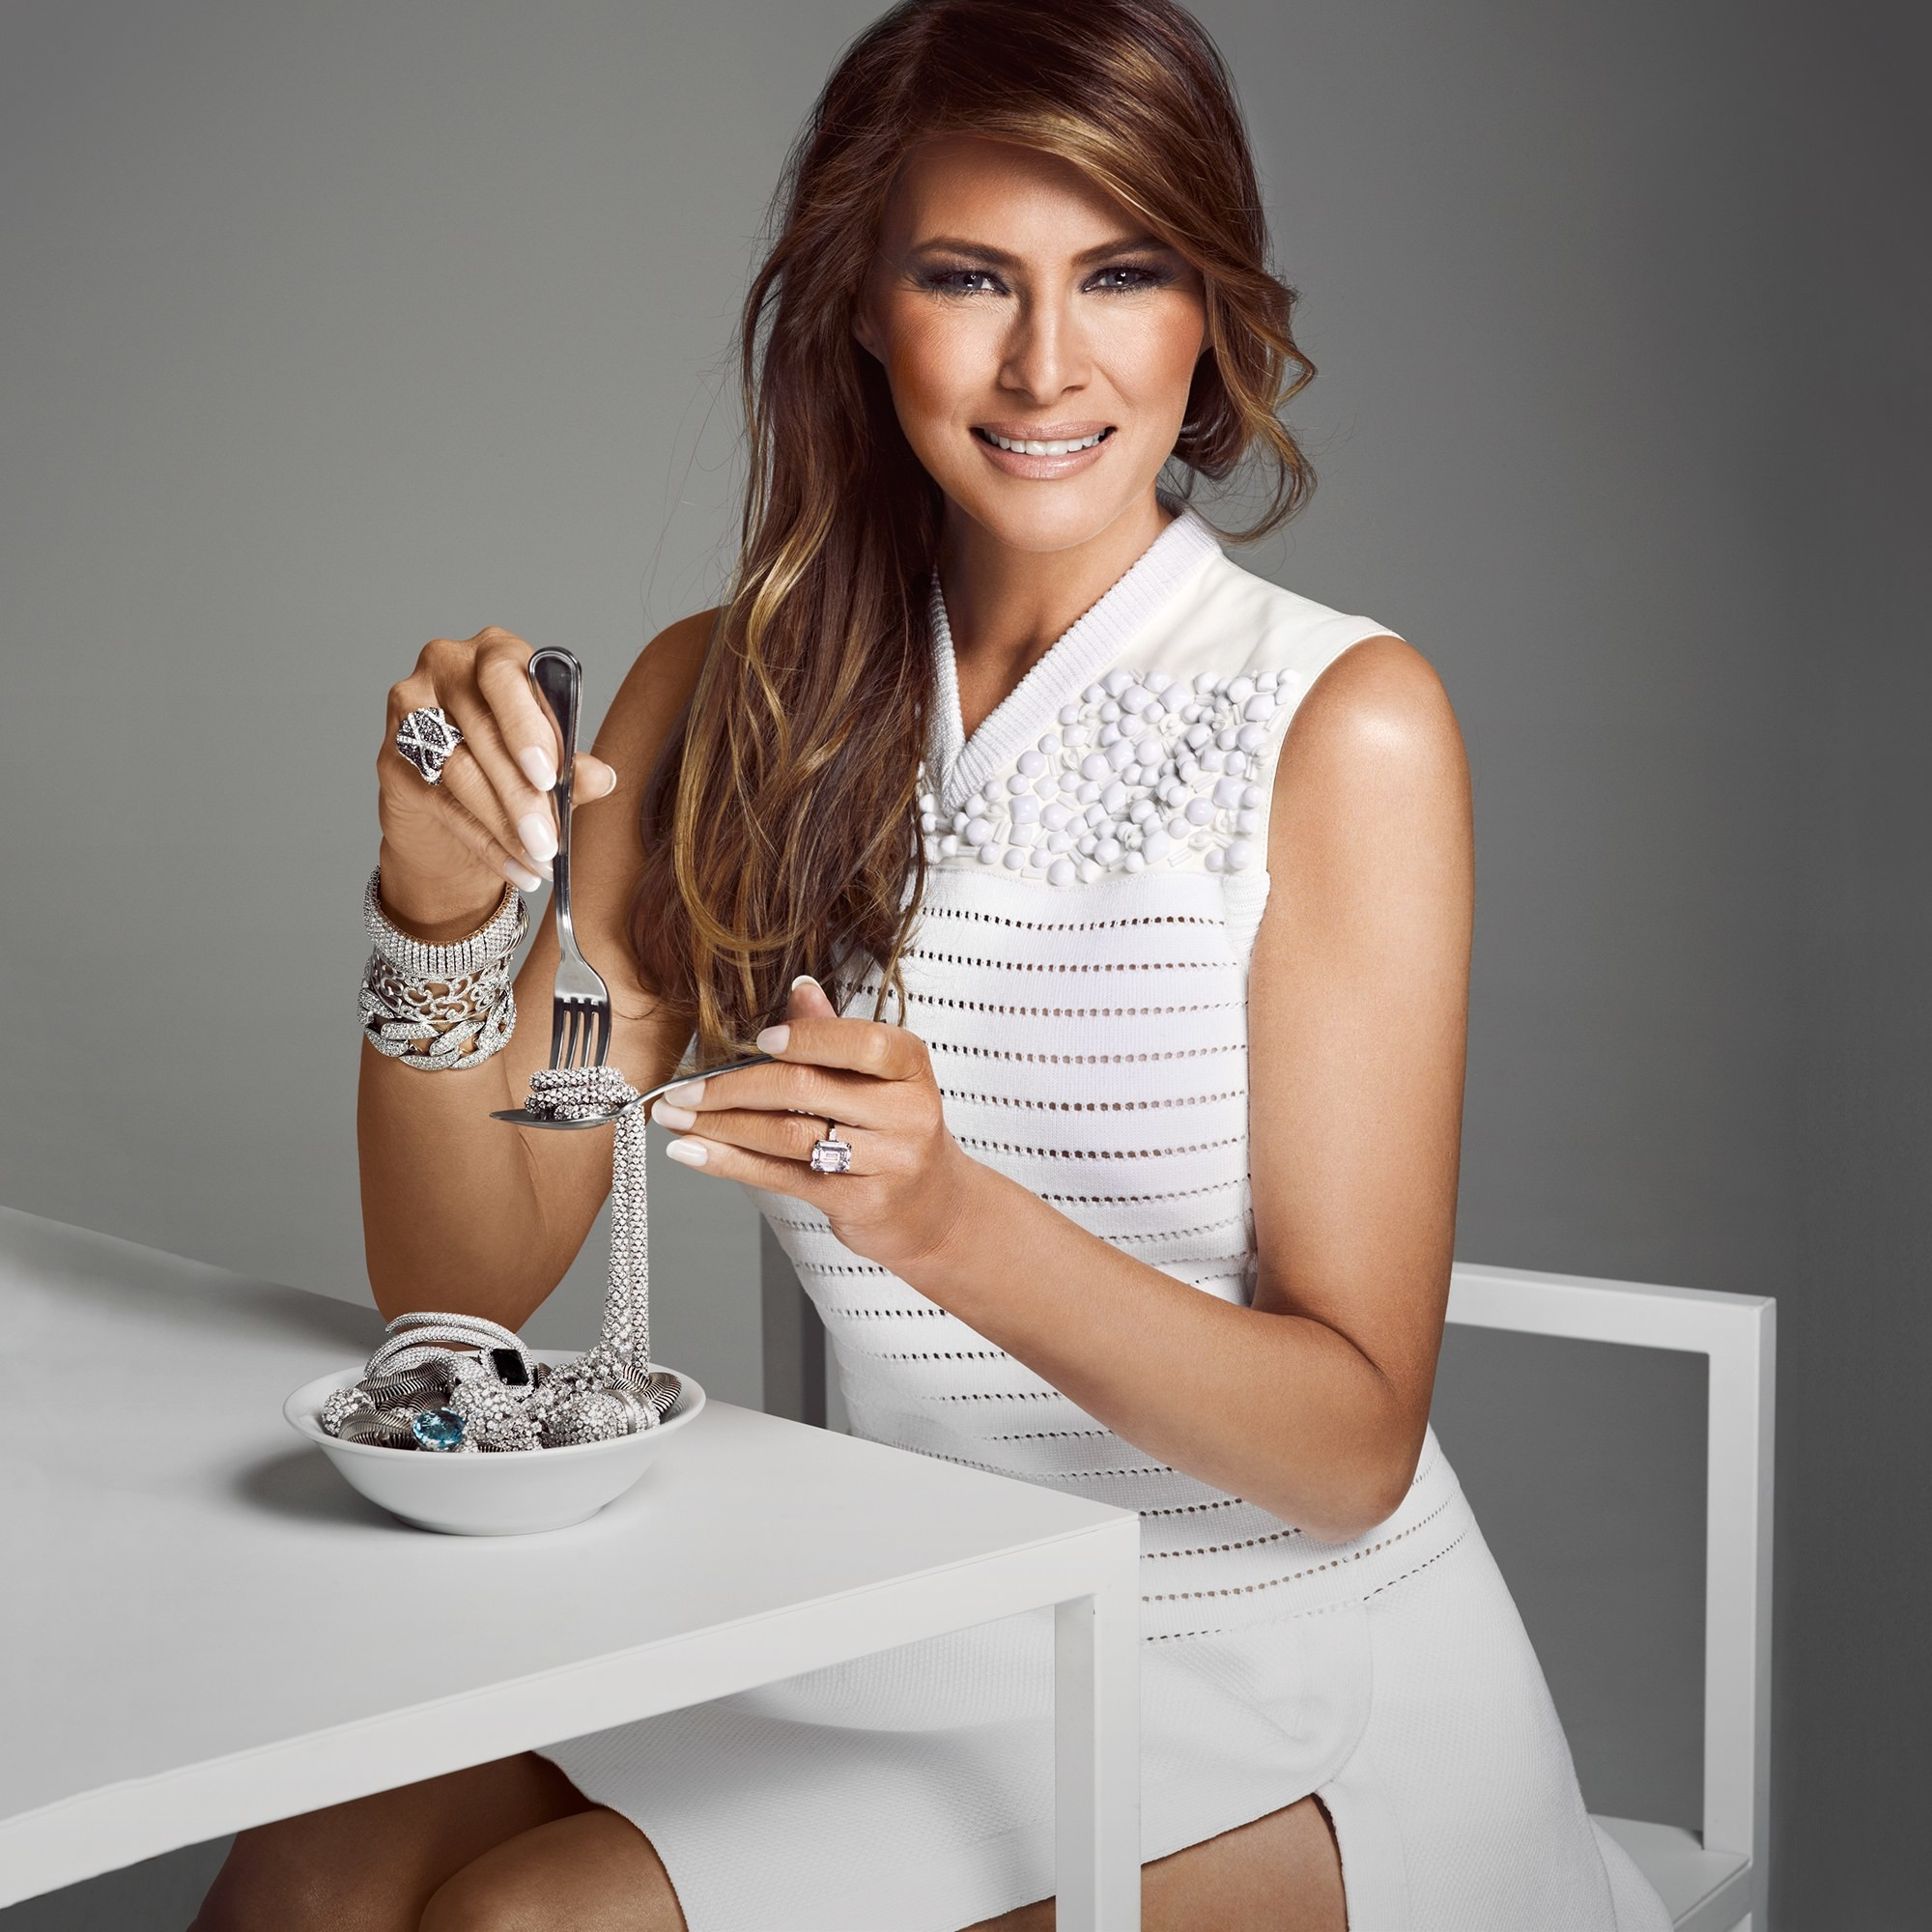 Melania Trump… different stages in her live